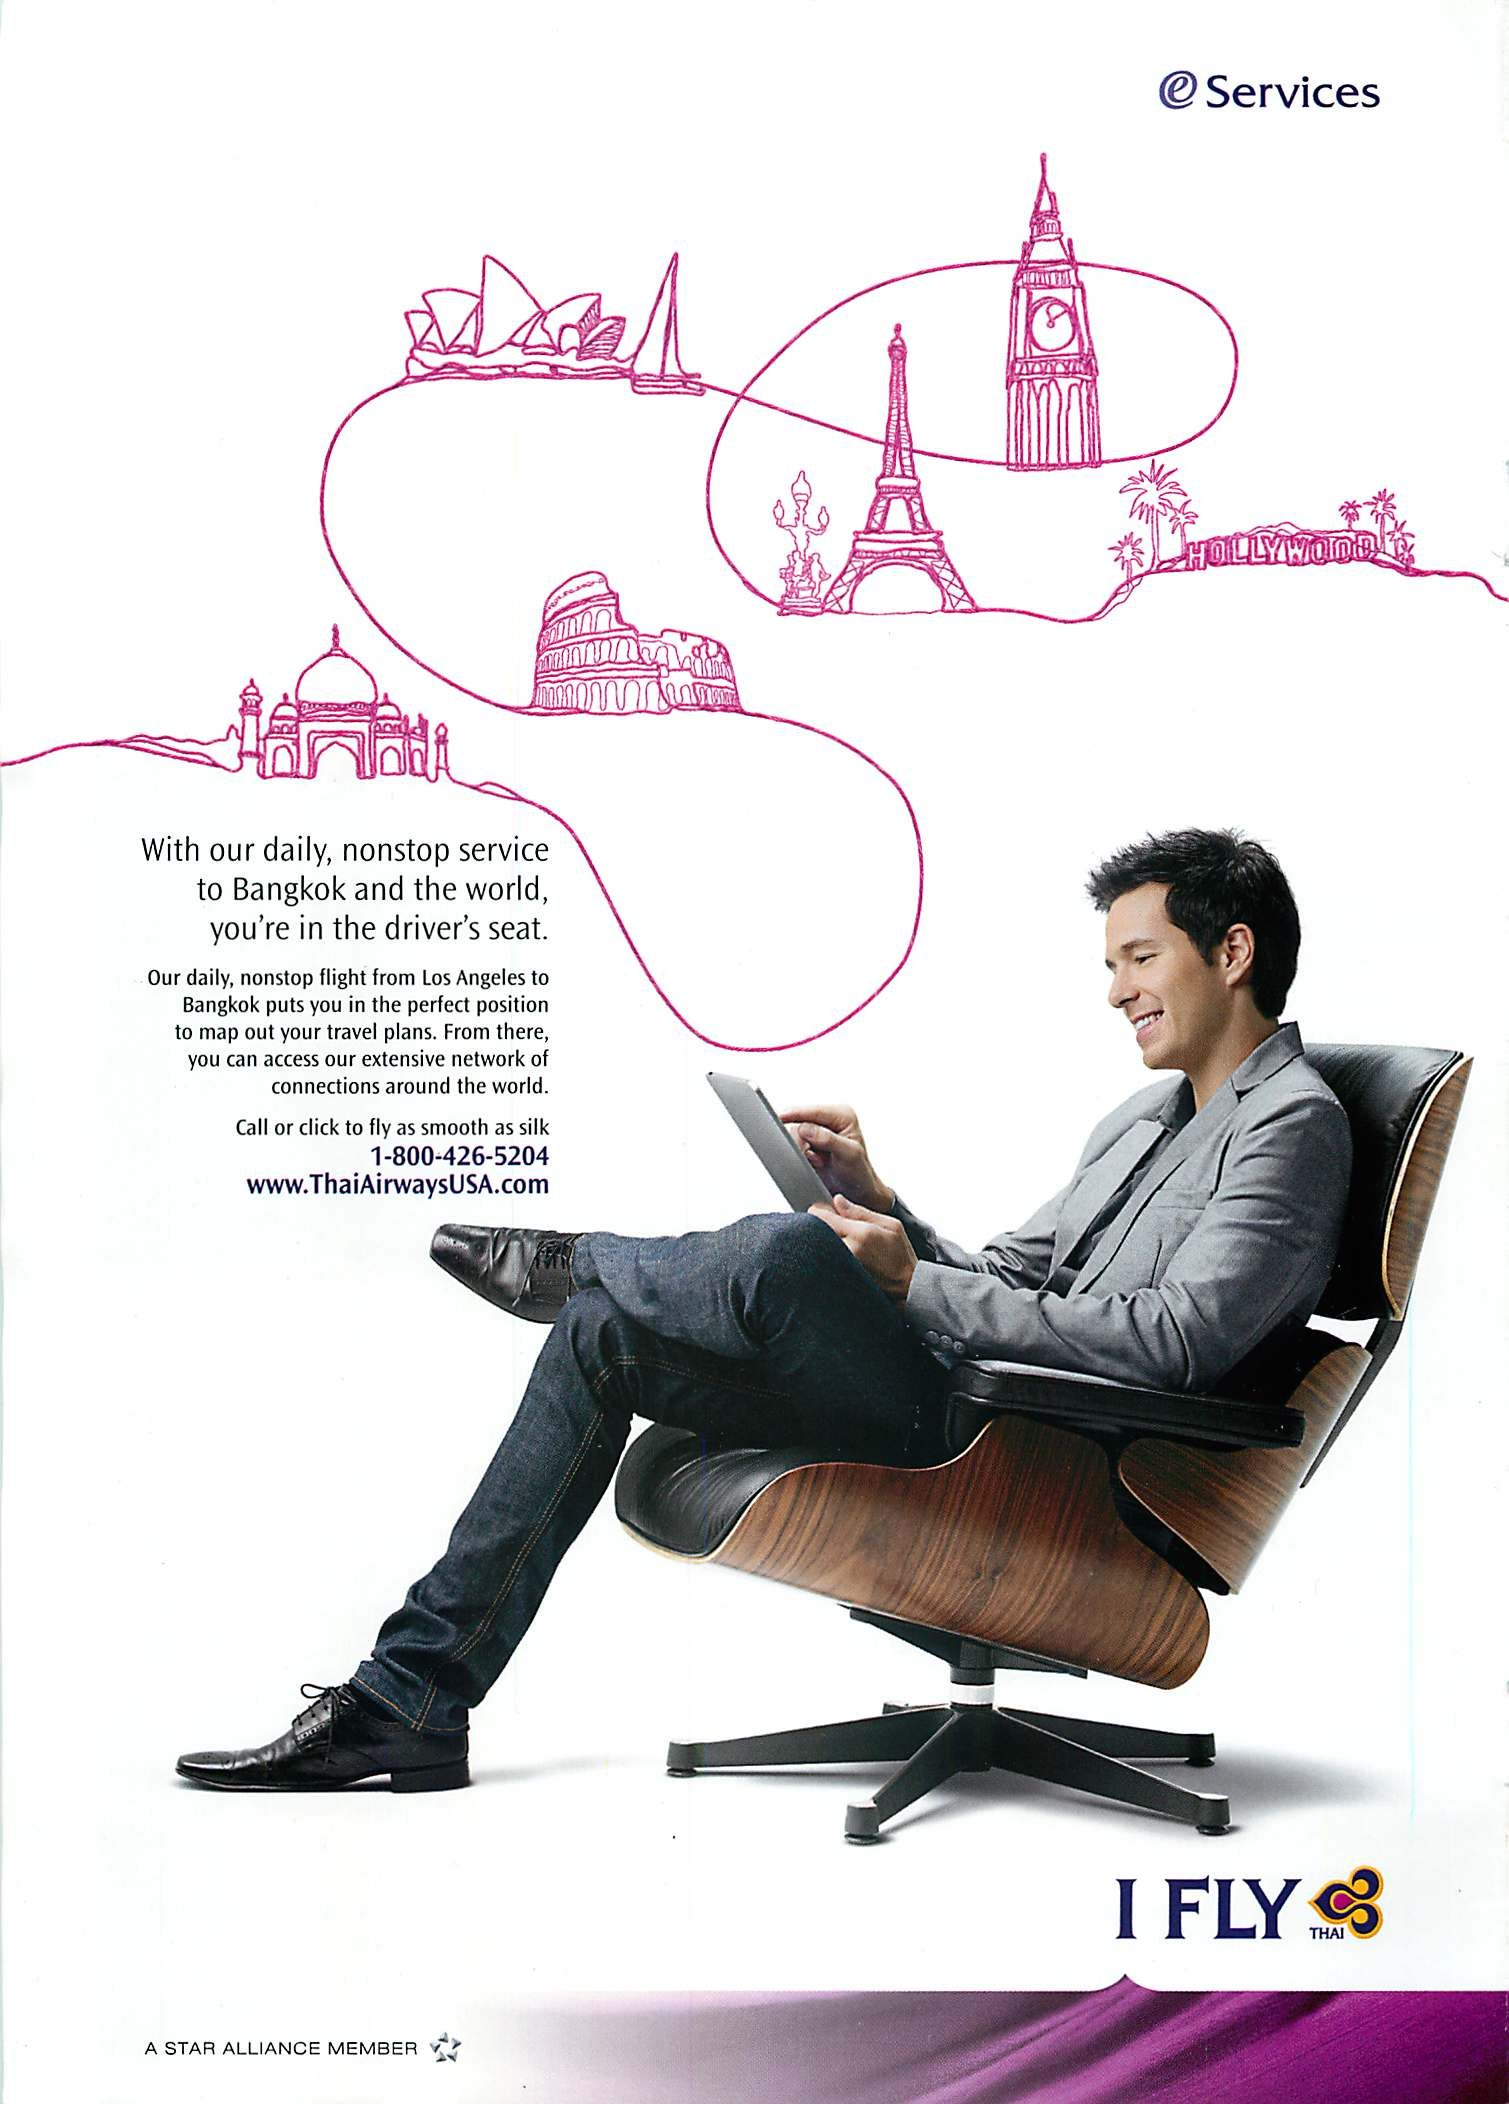 Vitra Eames Lounge Chair Dwg An Authentic Eames Lounge Chair By Vitra Is Featured In This Airline